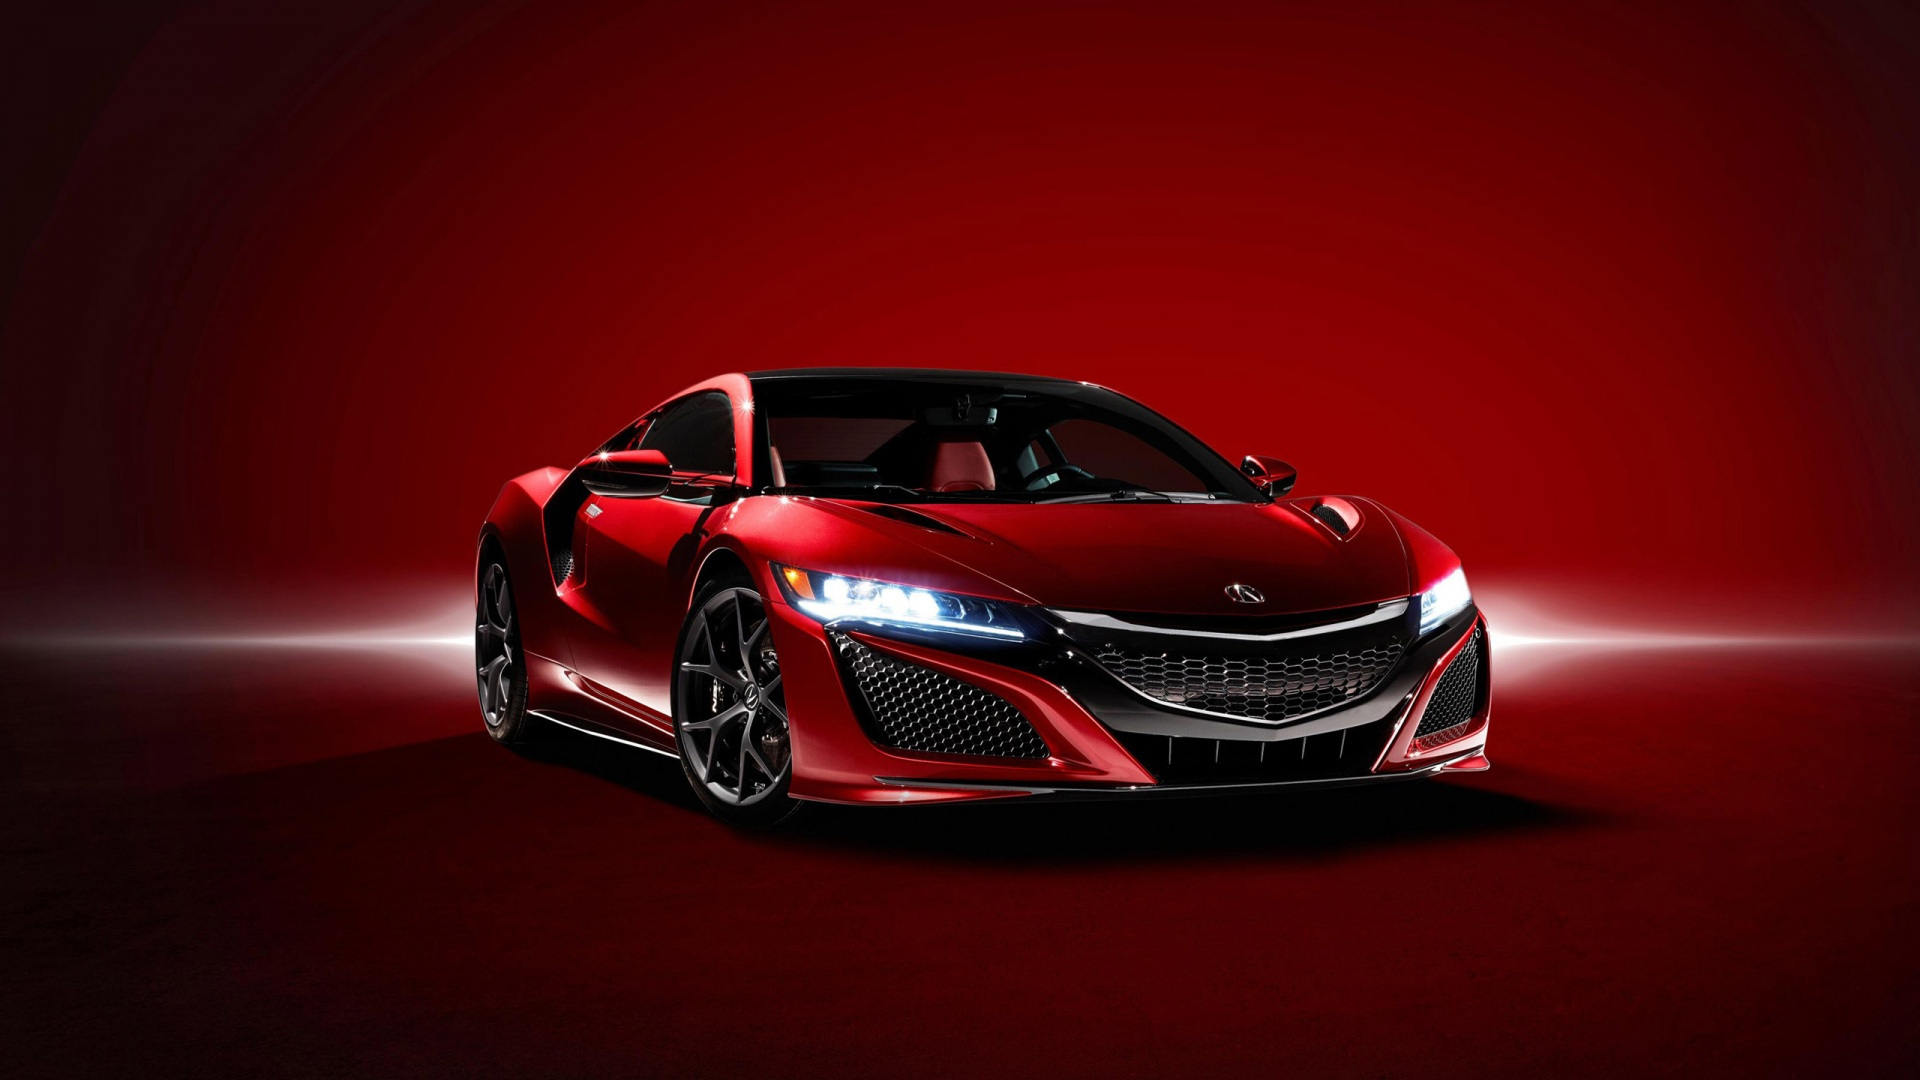 2016 Acura NSX Supercar Wallpapers HD Wallpapers 1920x1080